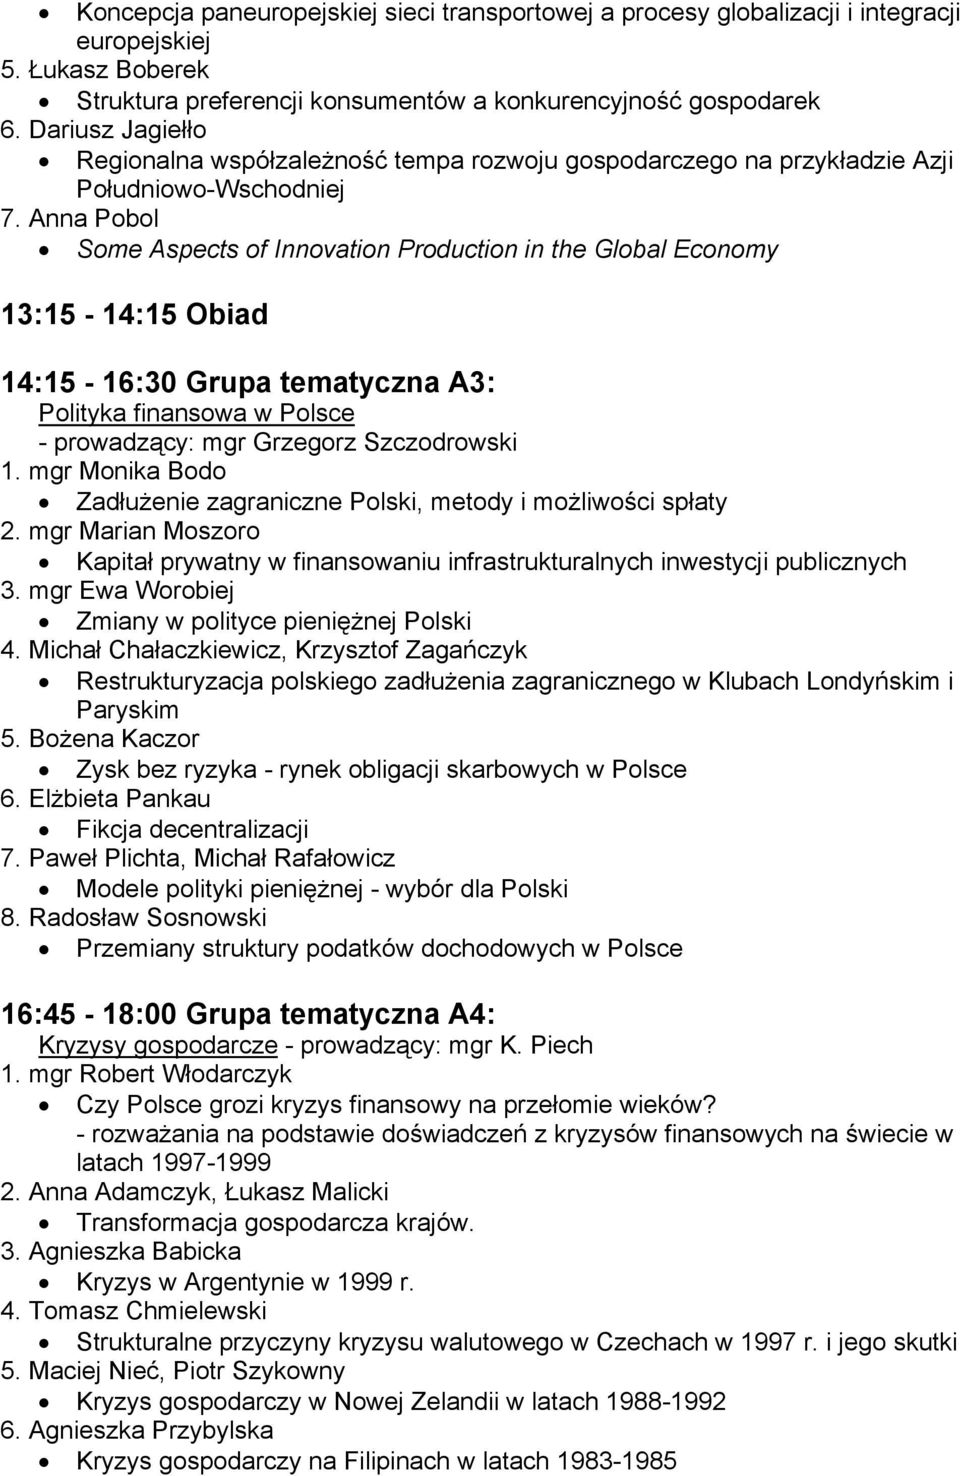 Anna Pobol Some Aspects of Innovation Production in the Global Economy 14:15-16:30 Grupa tematyczna A3: Polityka finansowa w Polsce - prowadzący: mgr Grzegorz Szczodrowski 1.